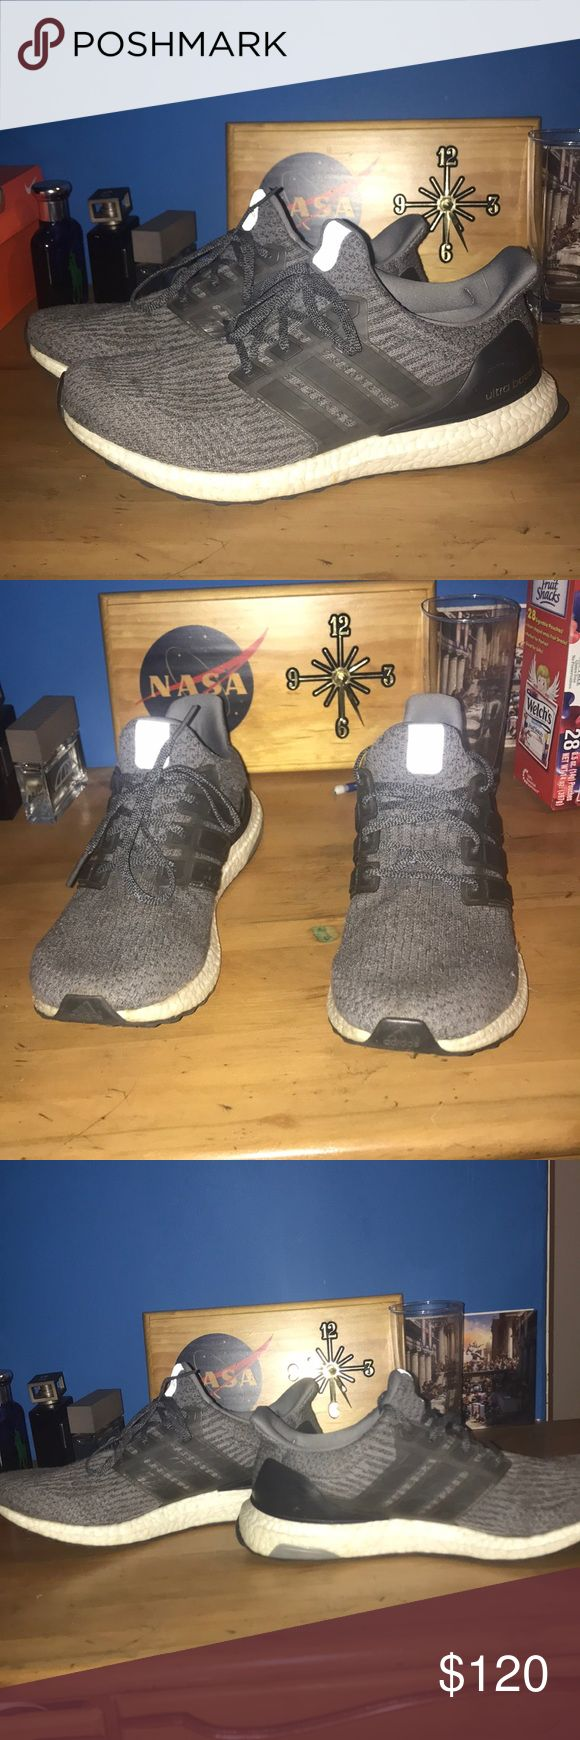 Men's adidas ultra boost size 11 Great condition, but definitely worn a little. adidas Shoes Athletic Shoes